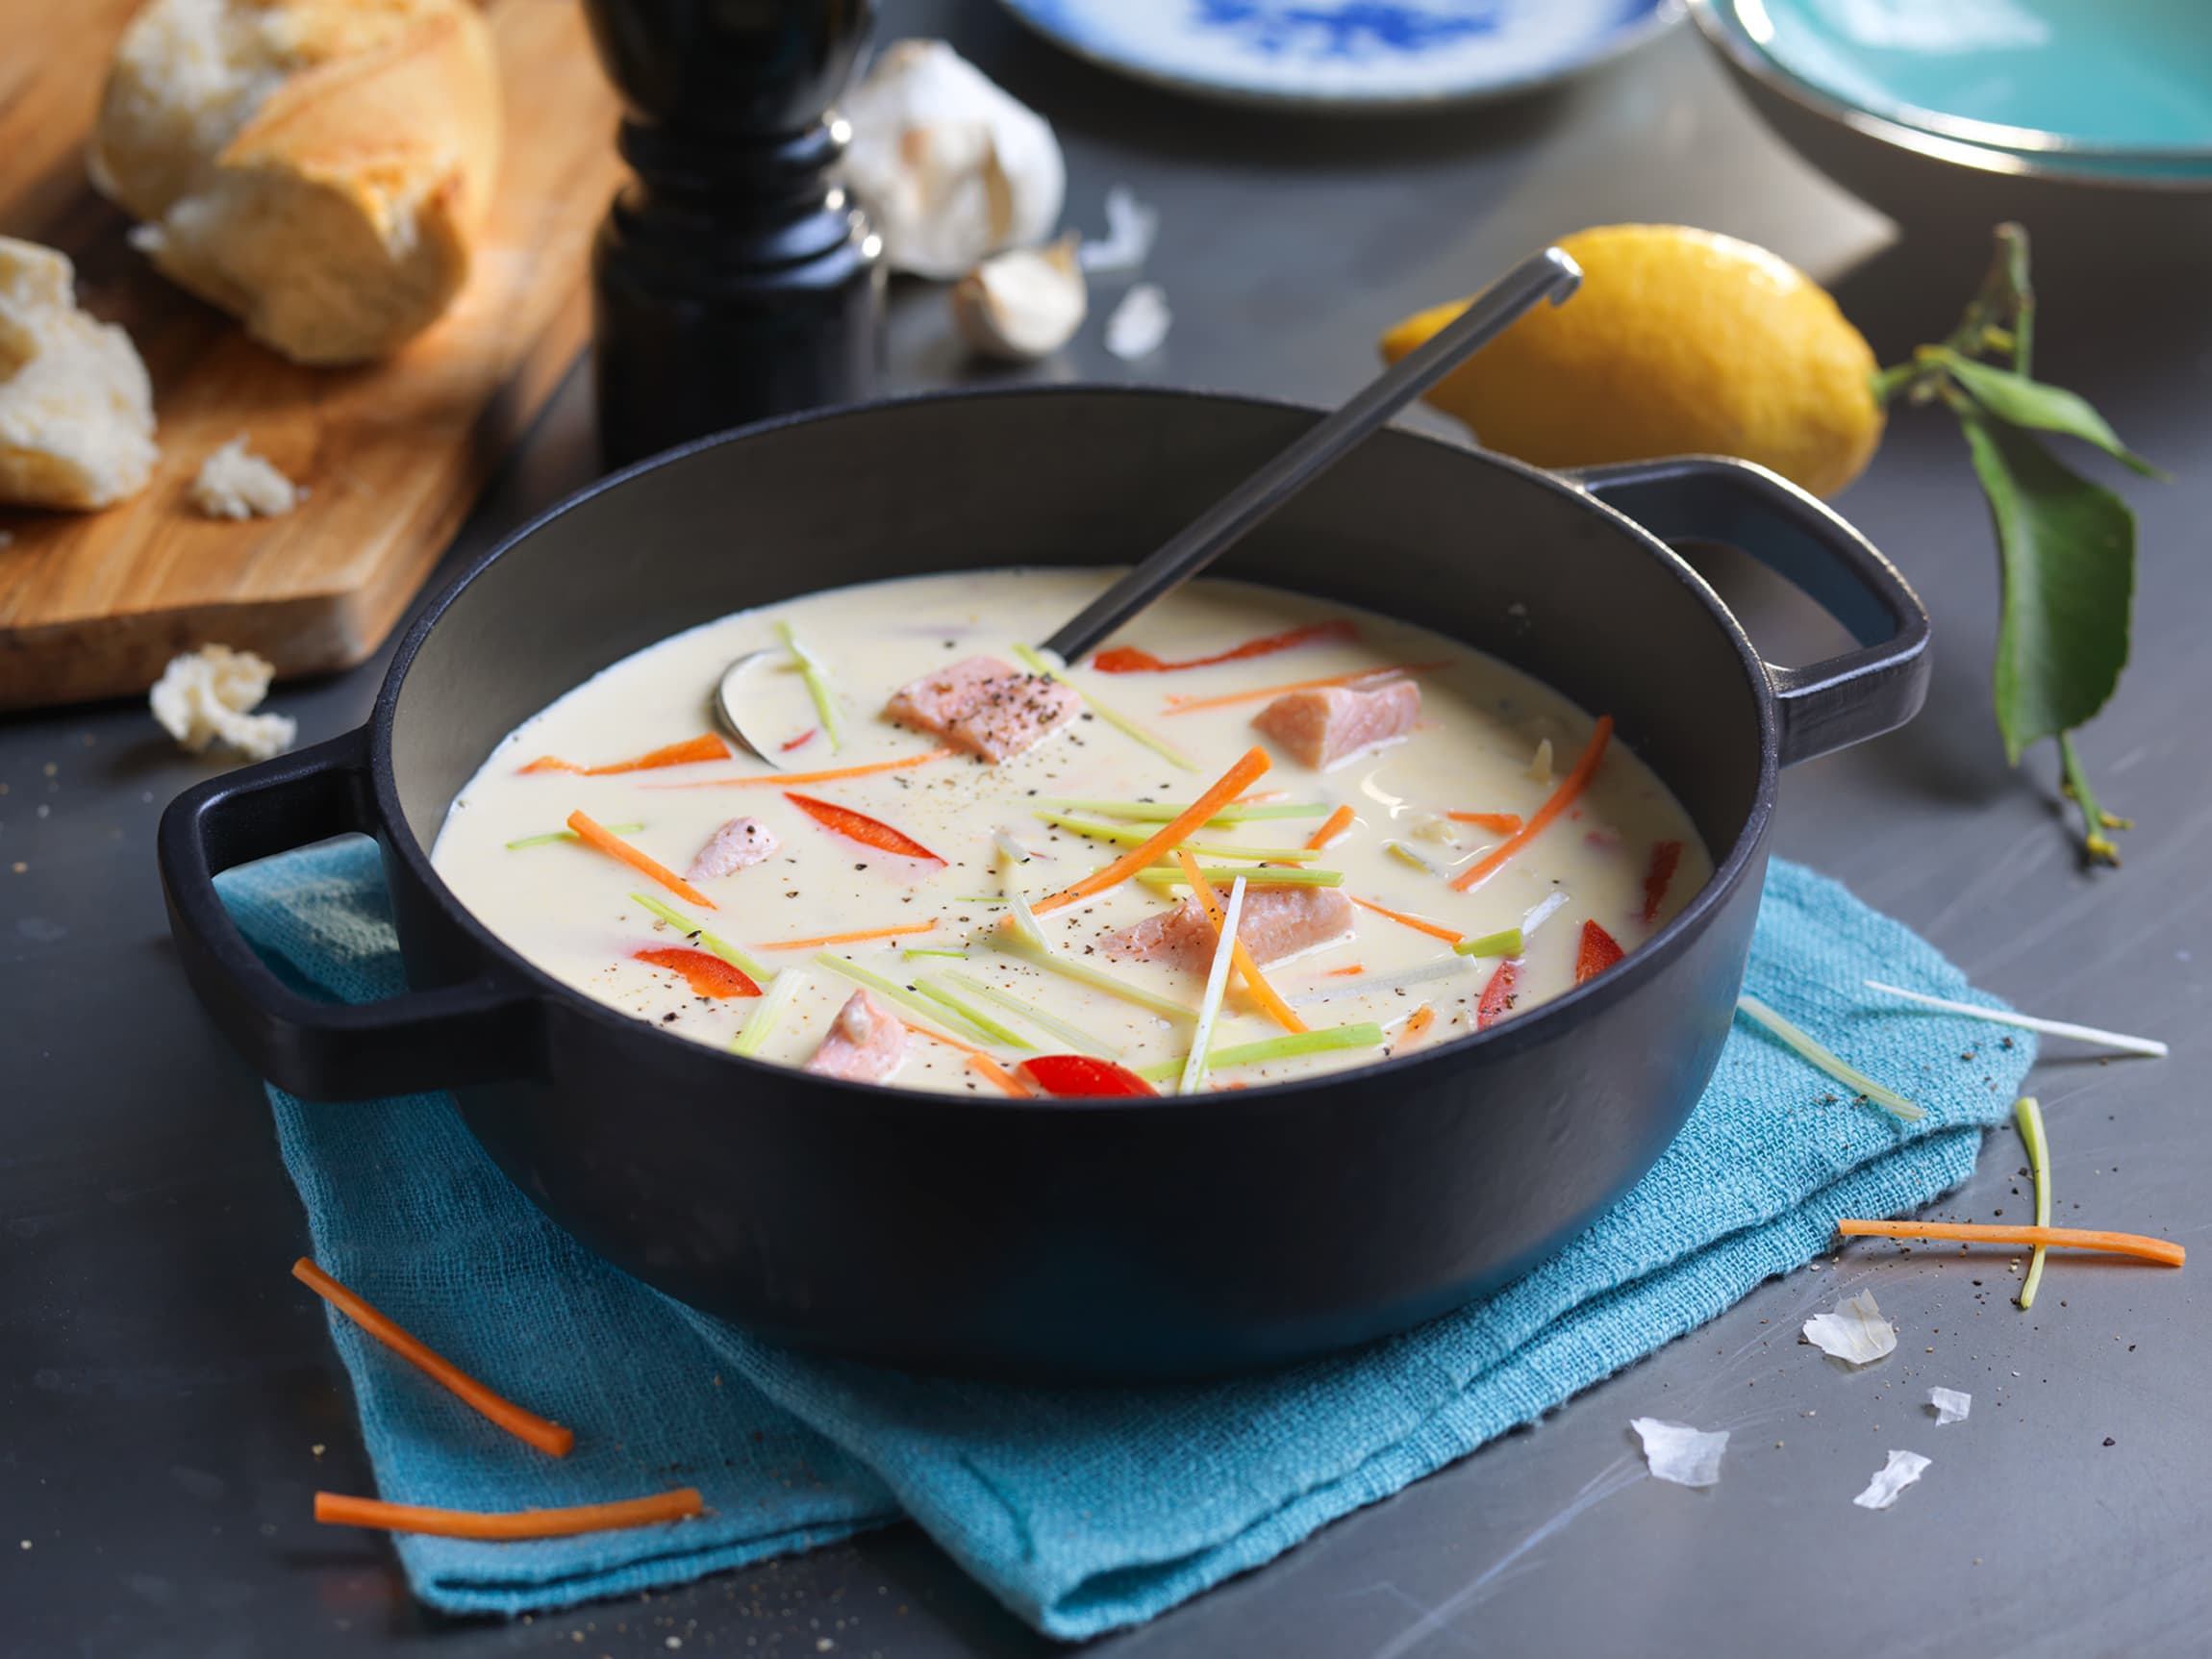 Norges beste fiskesuppe?